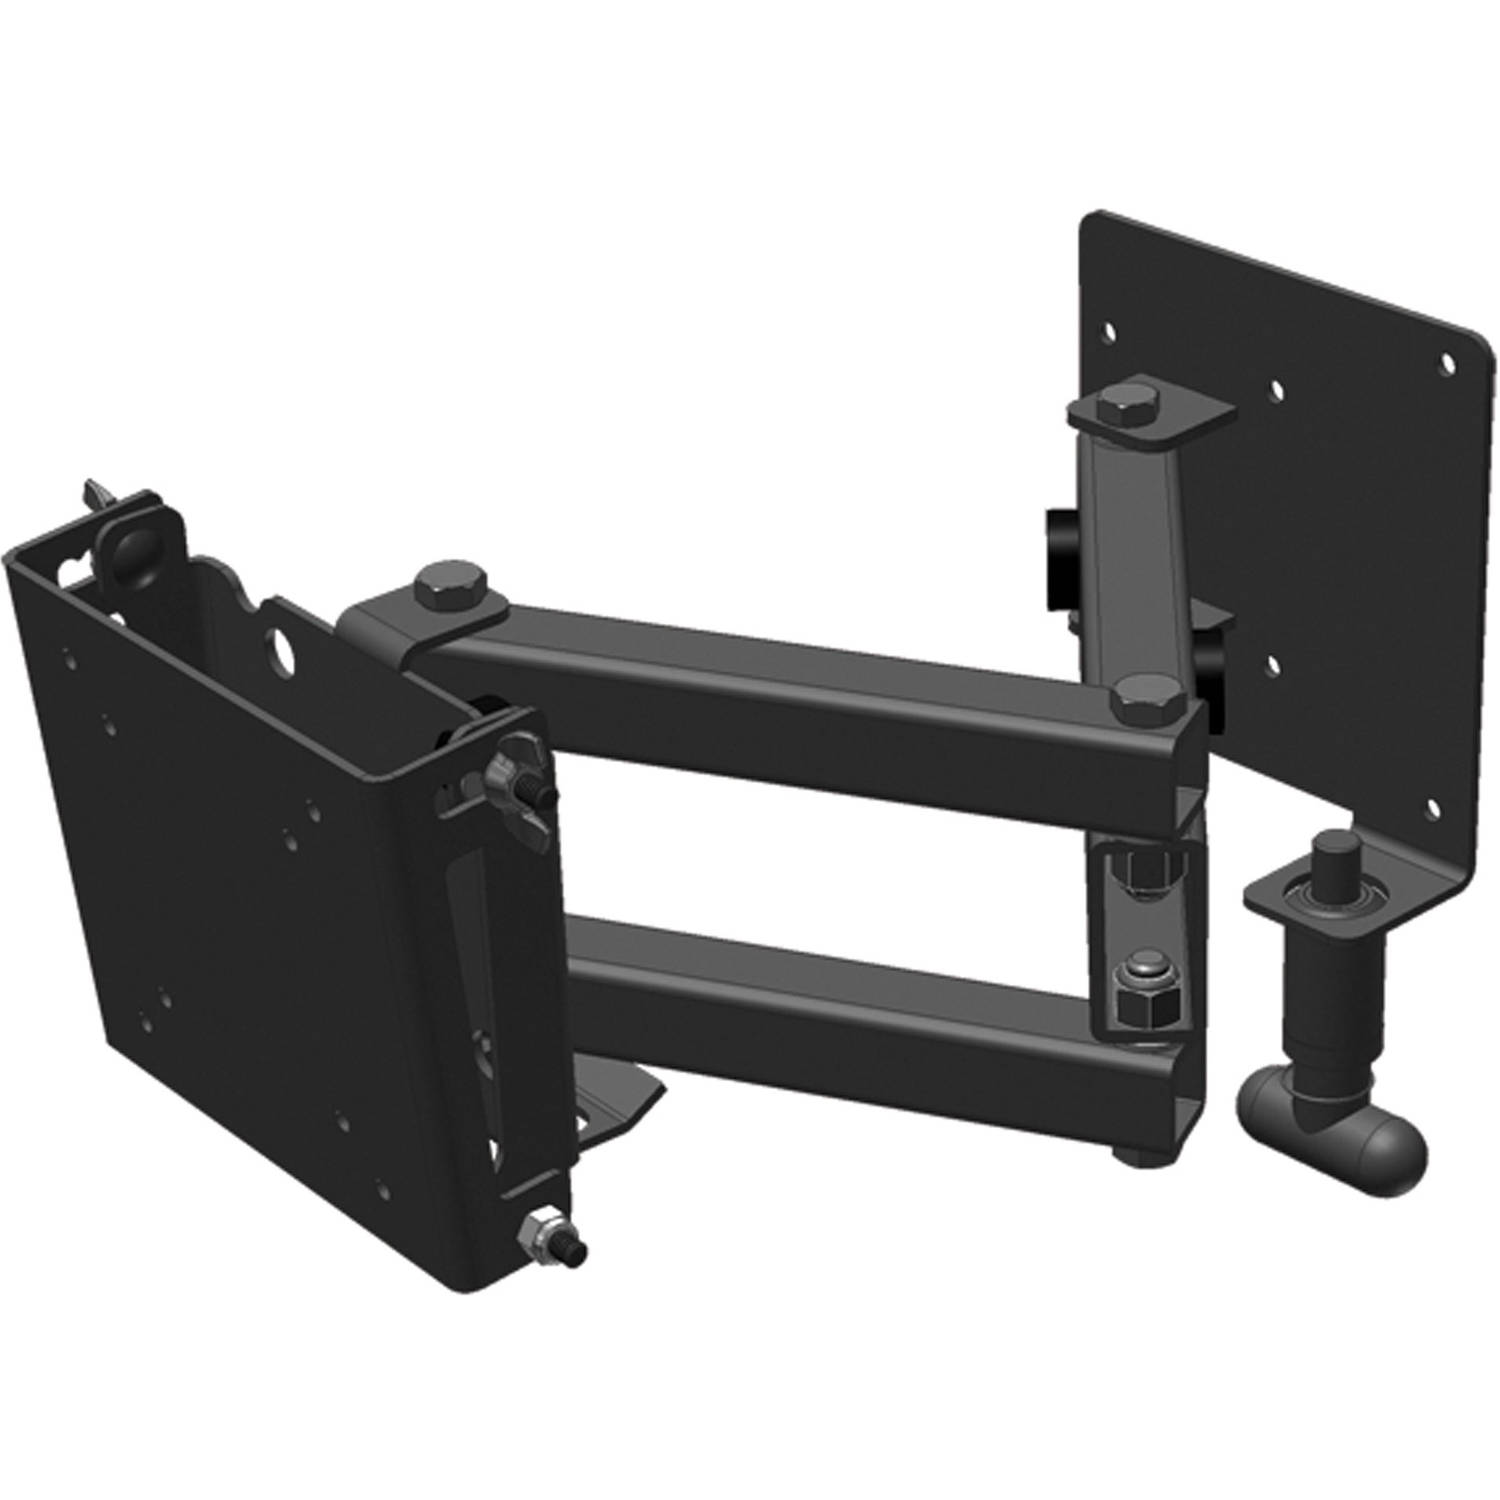 MORryde TV1-025H Small Extending Swivel Wall Mount